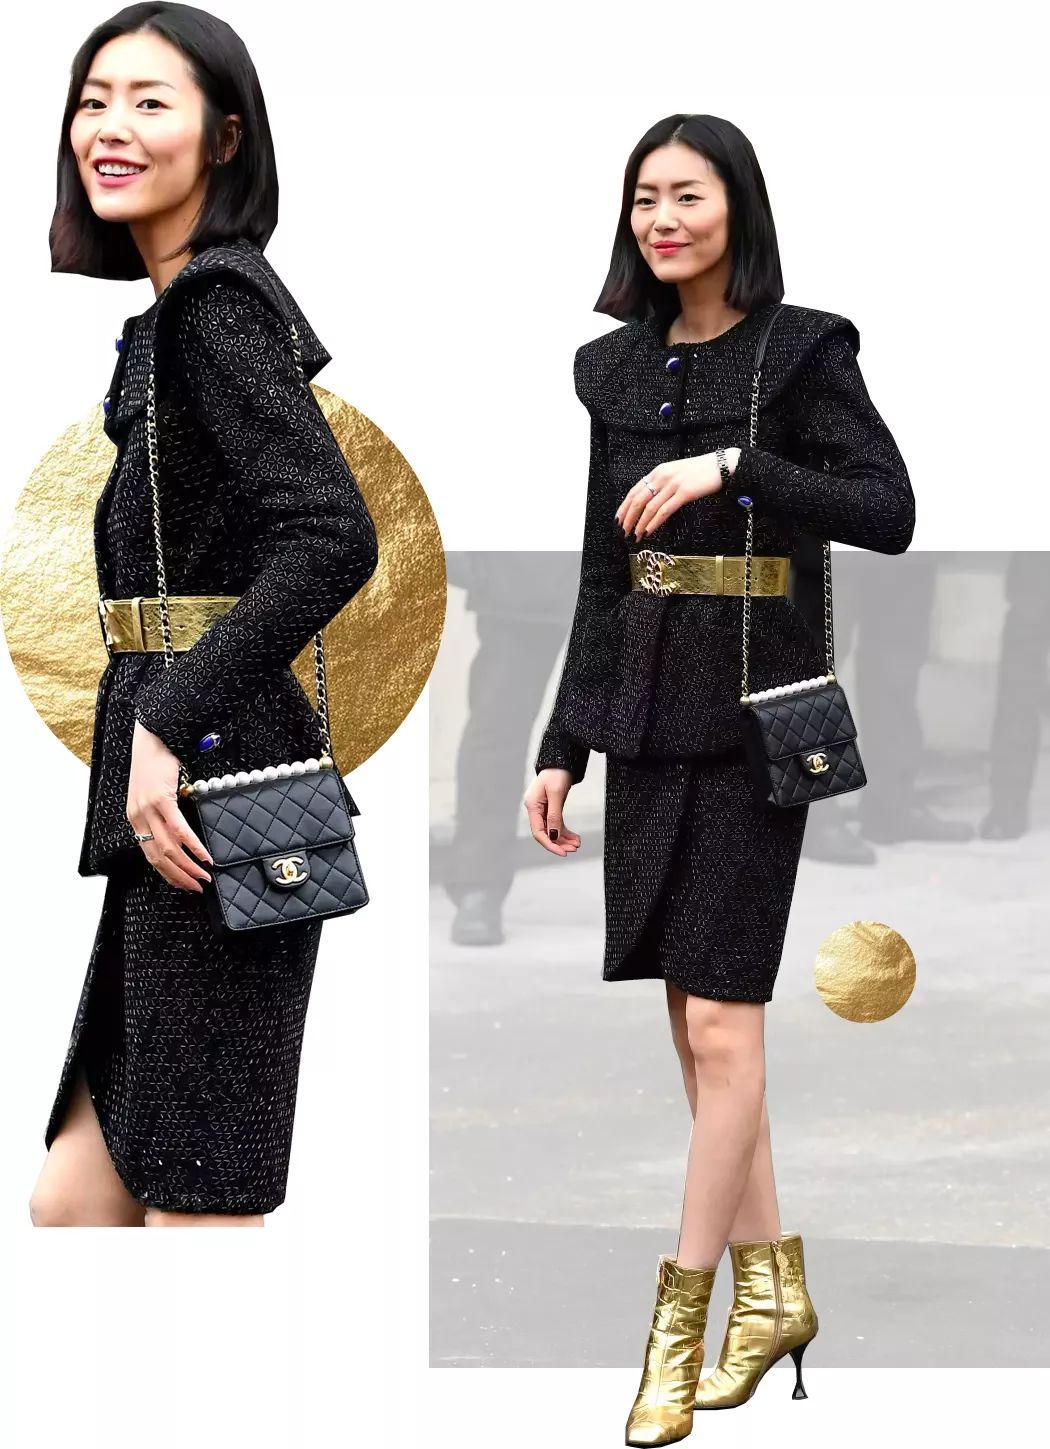 Chanel Pearl bag and Liu Wen